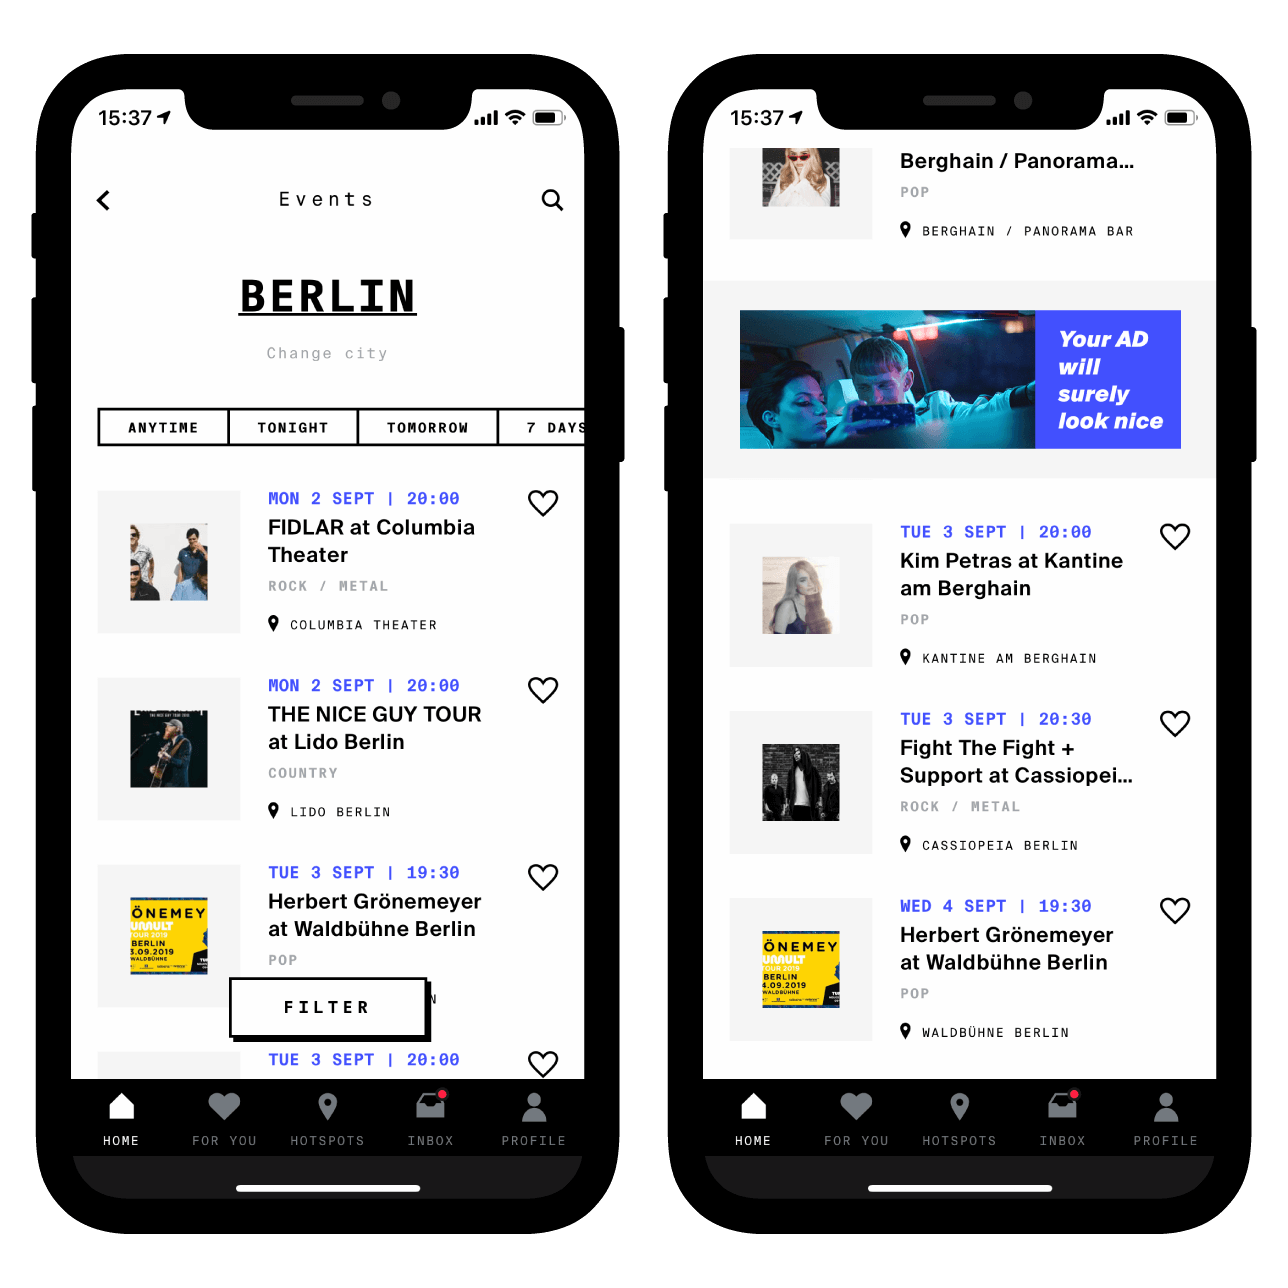 Standard mobile banners